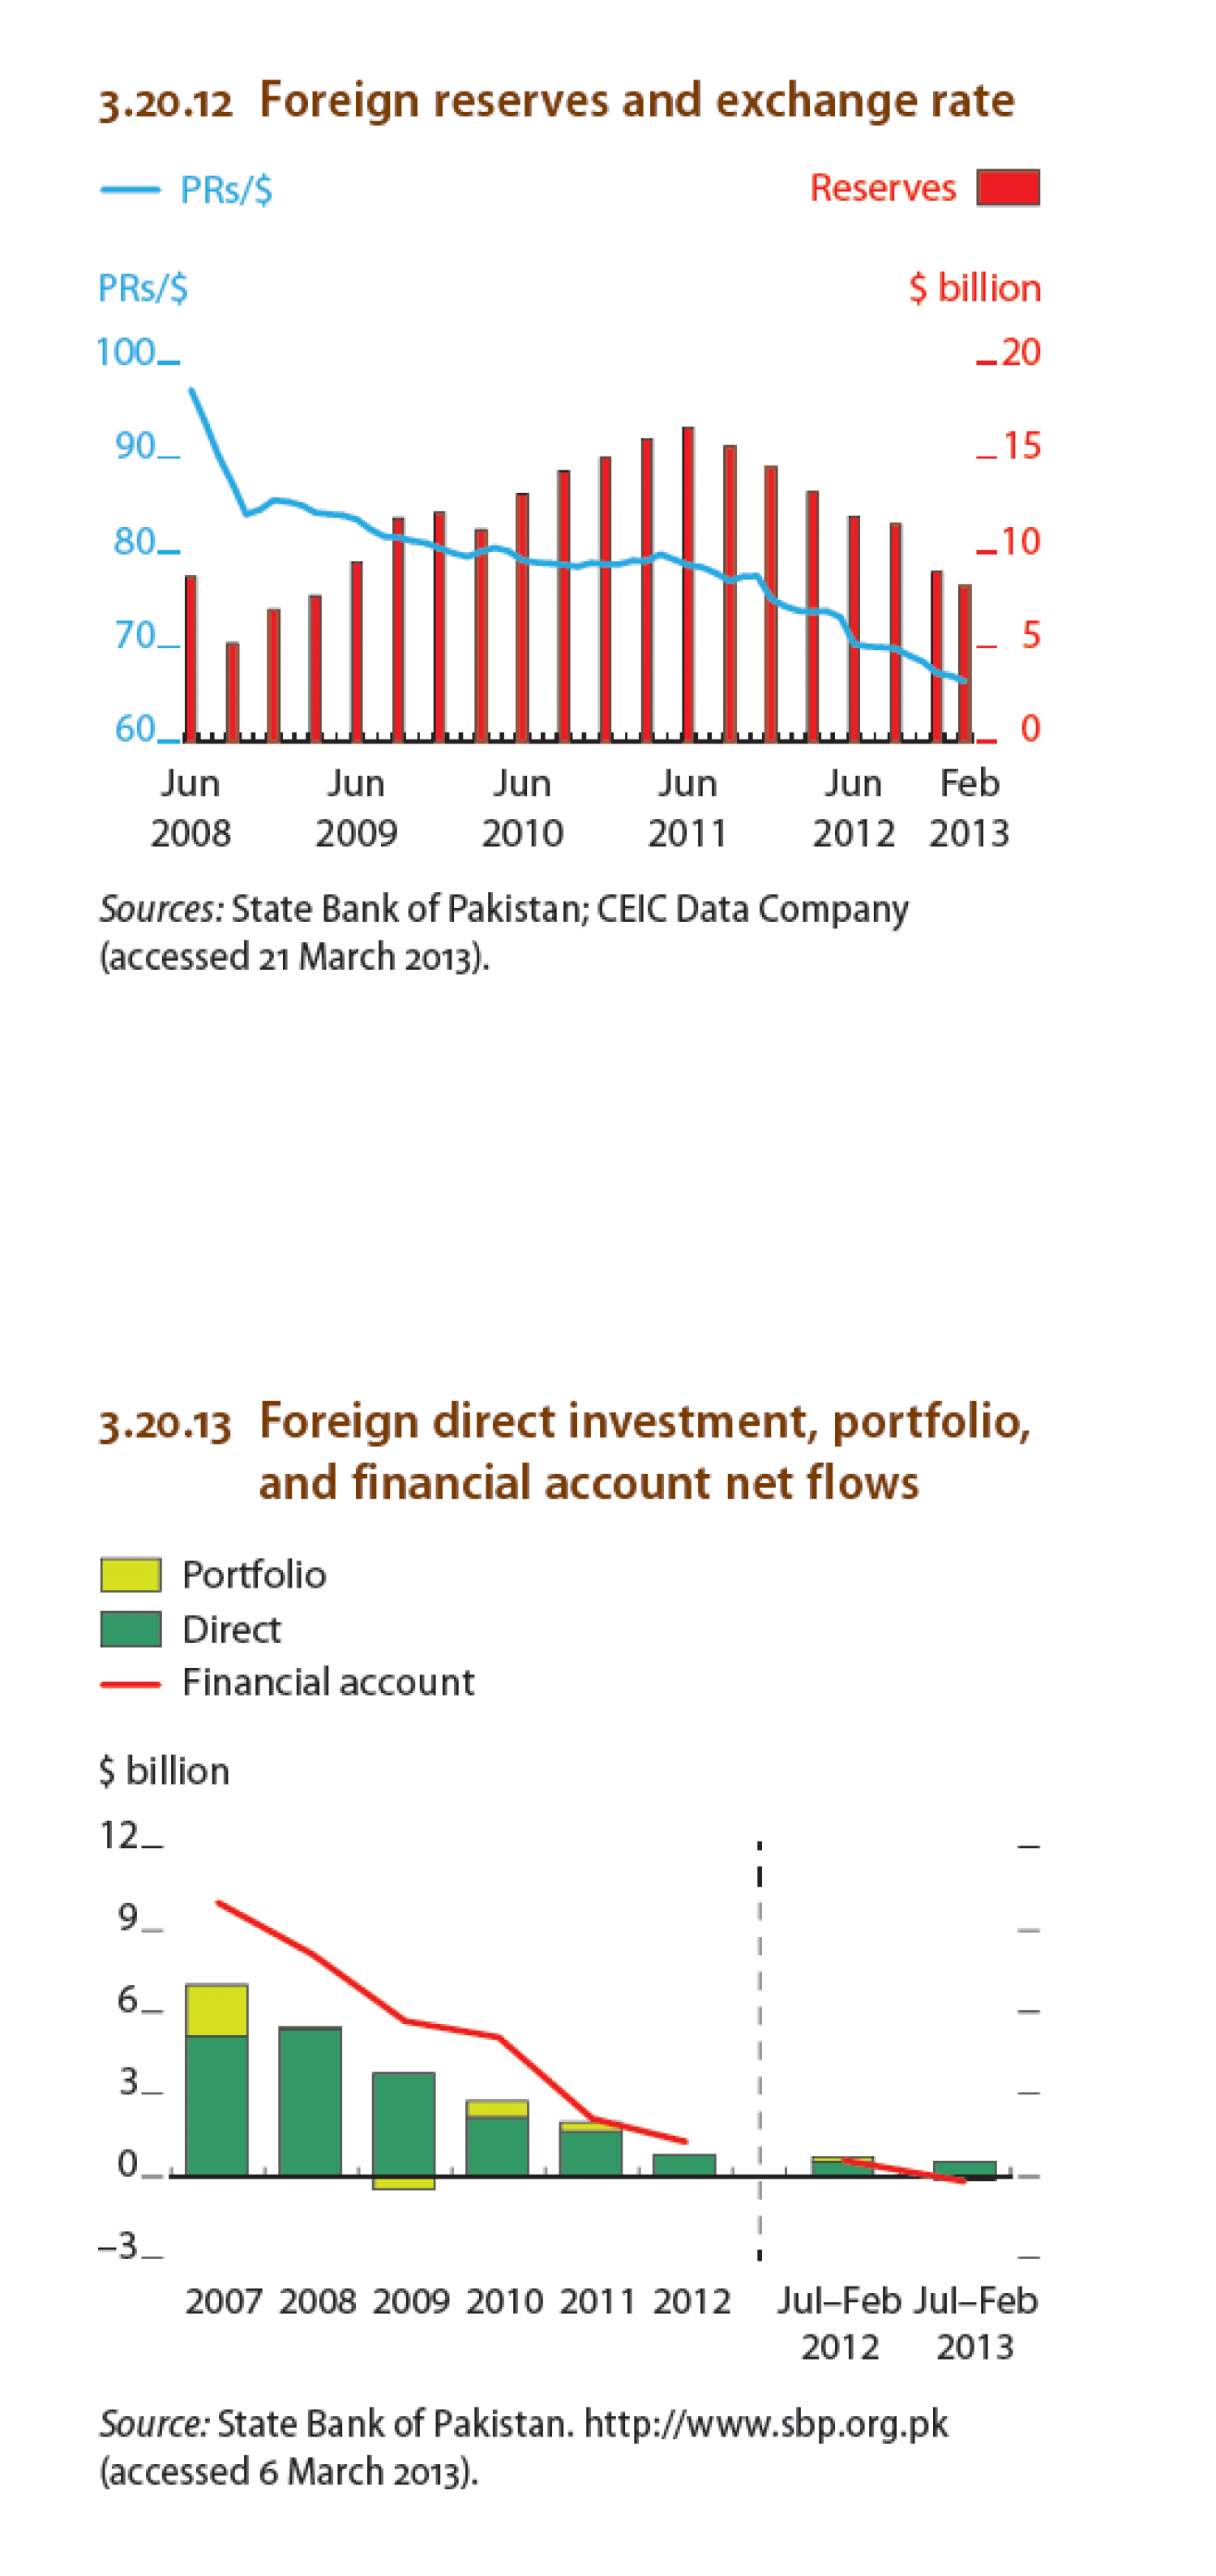 PAKISTAN - Foreign reserves and exchange rate, Foreign direct investment Infographic